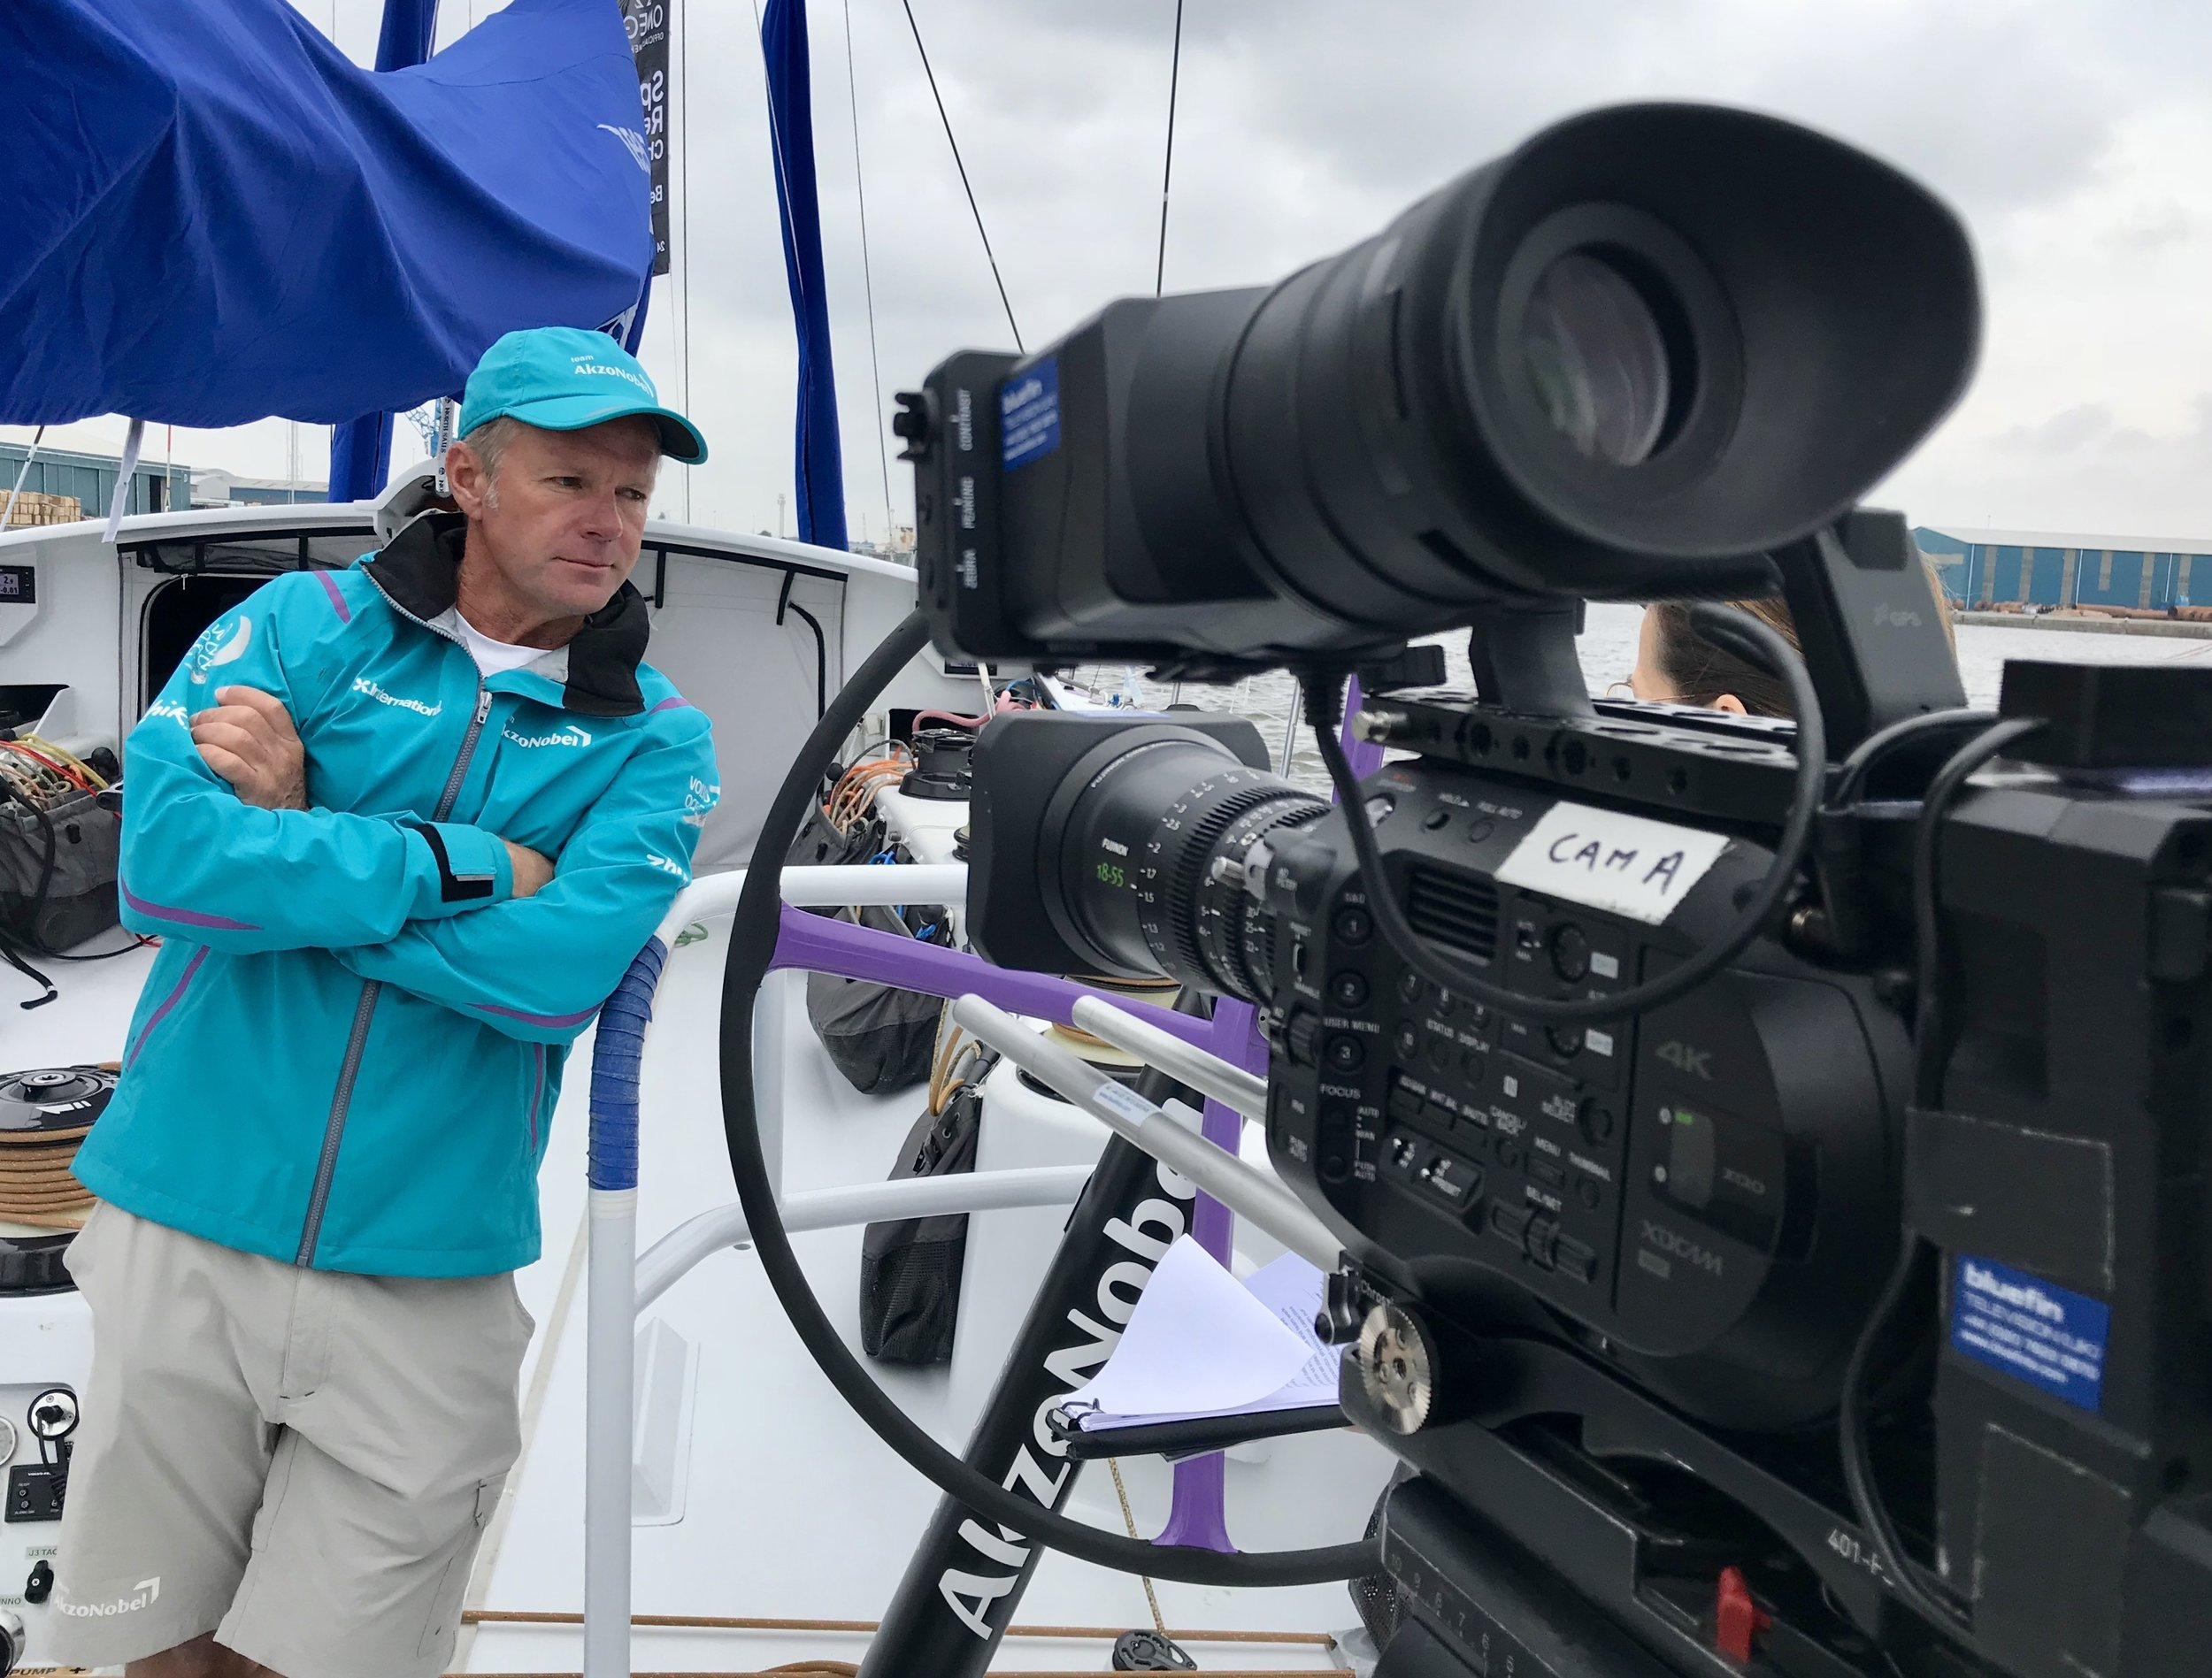 Chris Nicholson Skipper of AzkoNobel's Boat - Cardiff 2018 - Ant Leake for Bluefin TV